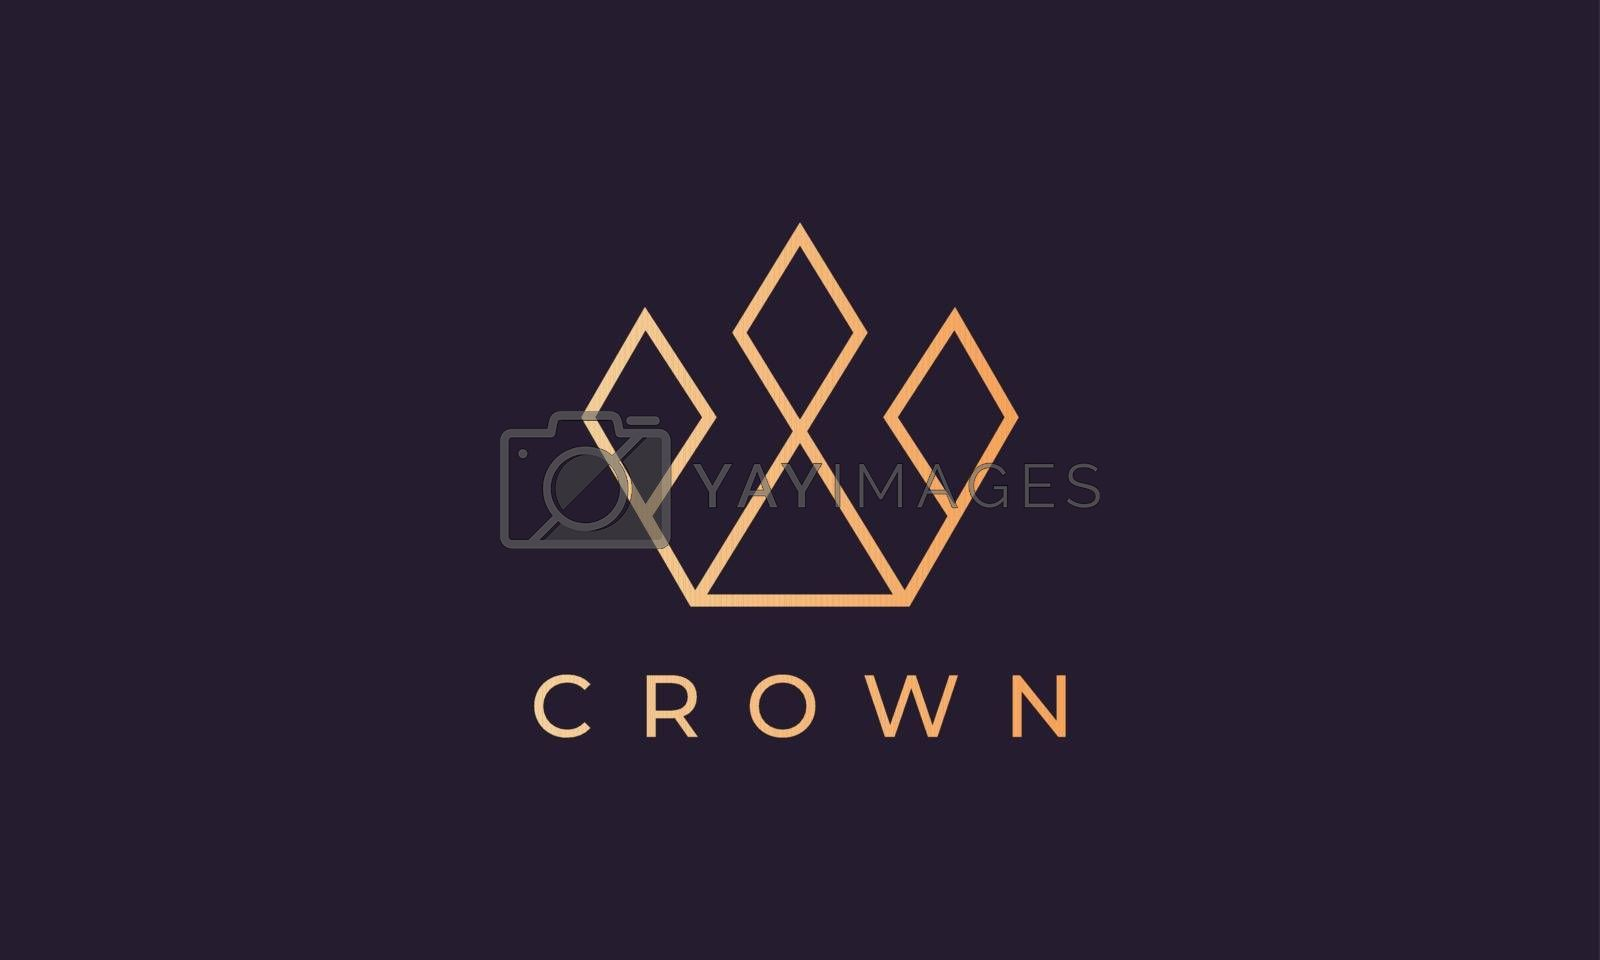 royal crown logo with minimalist line art style and luxury gold color